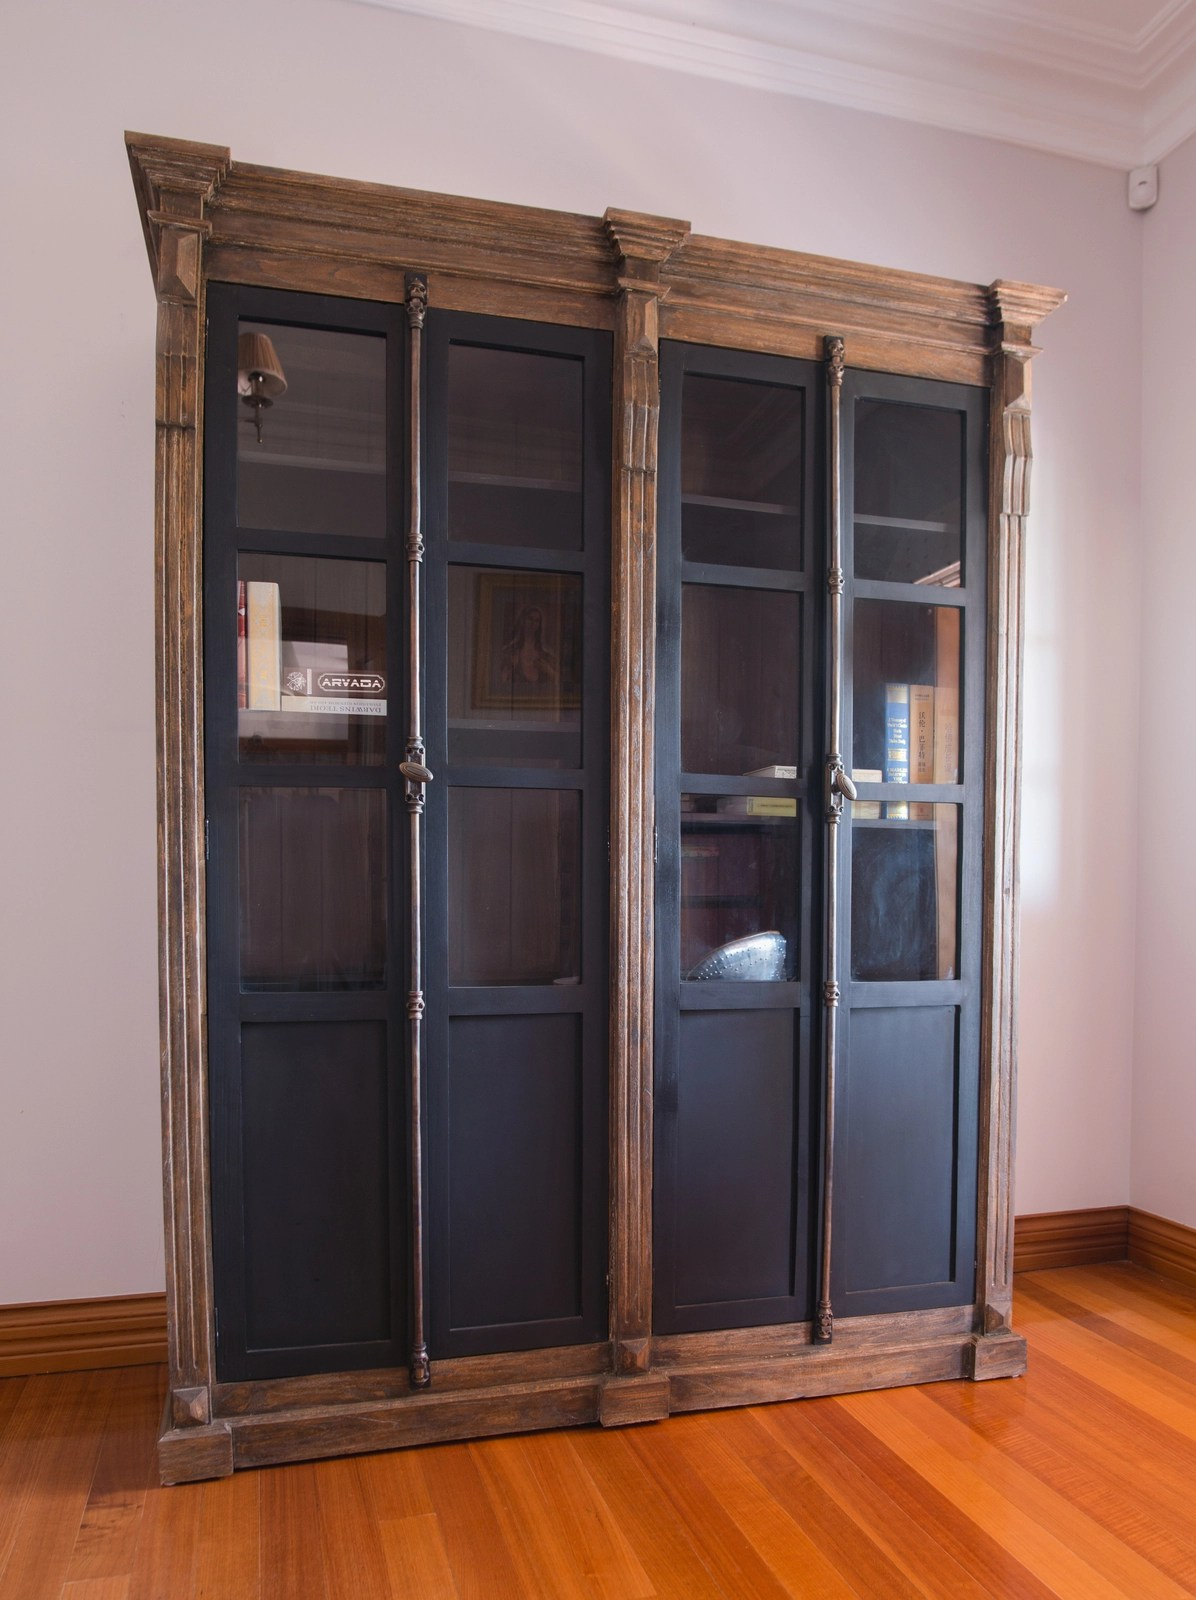 Toulouse Industrial Display Cabinet Furniture Brisbane